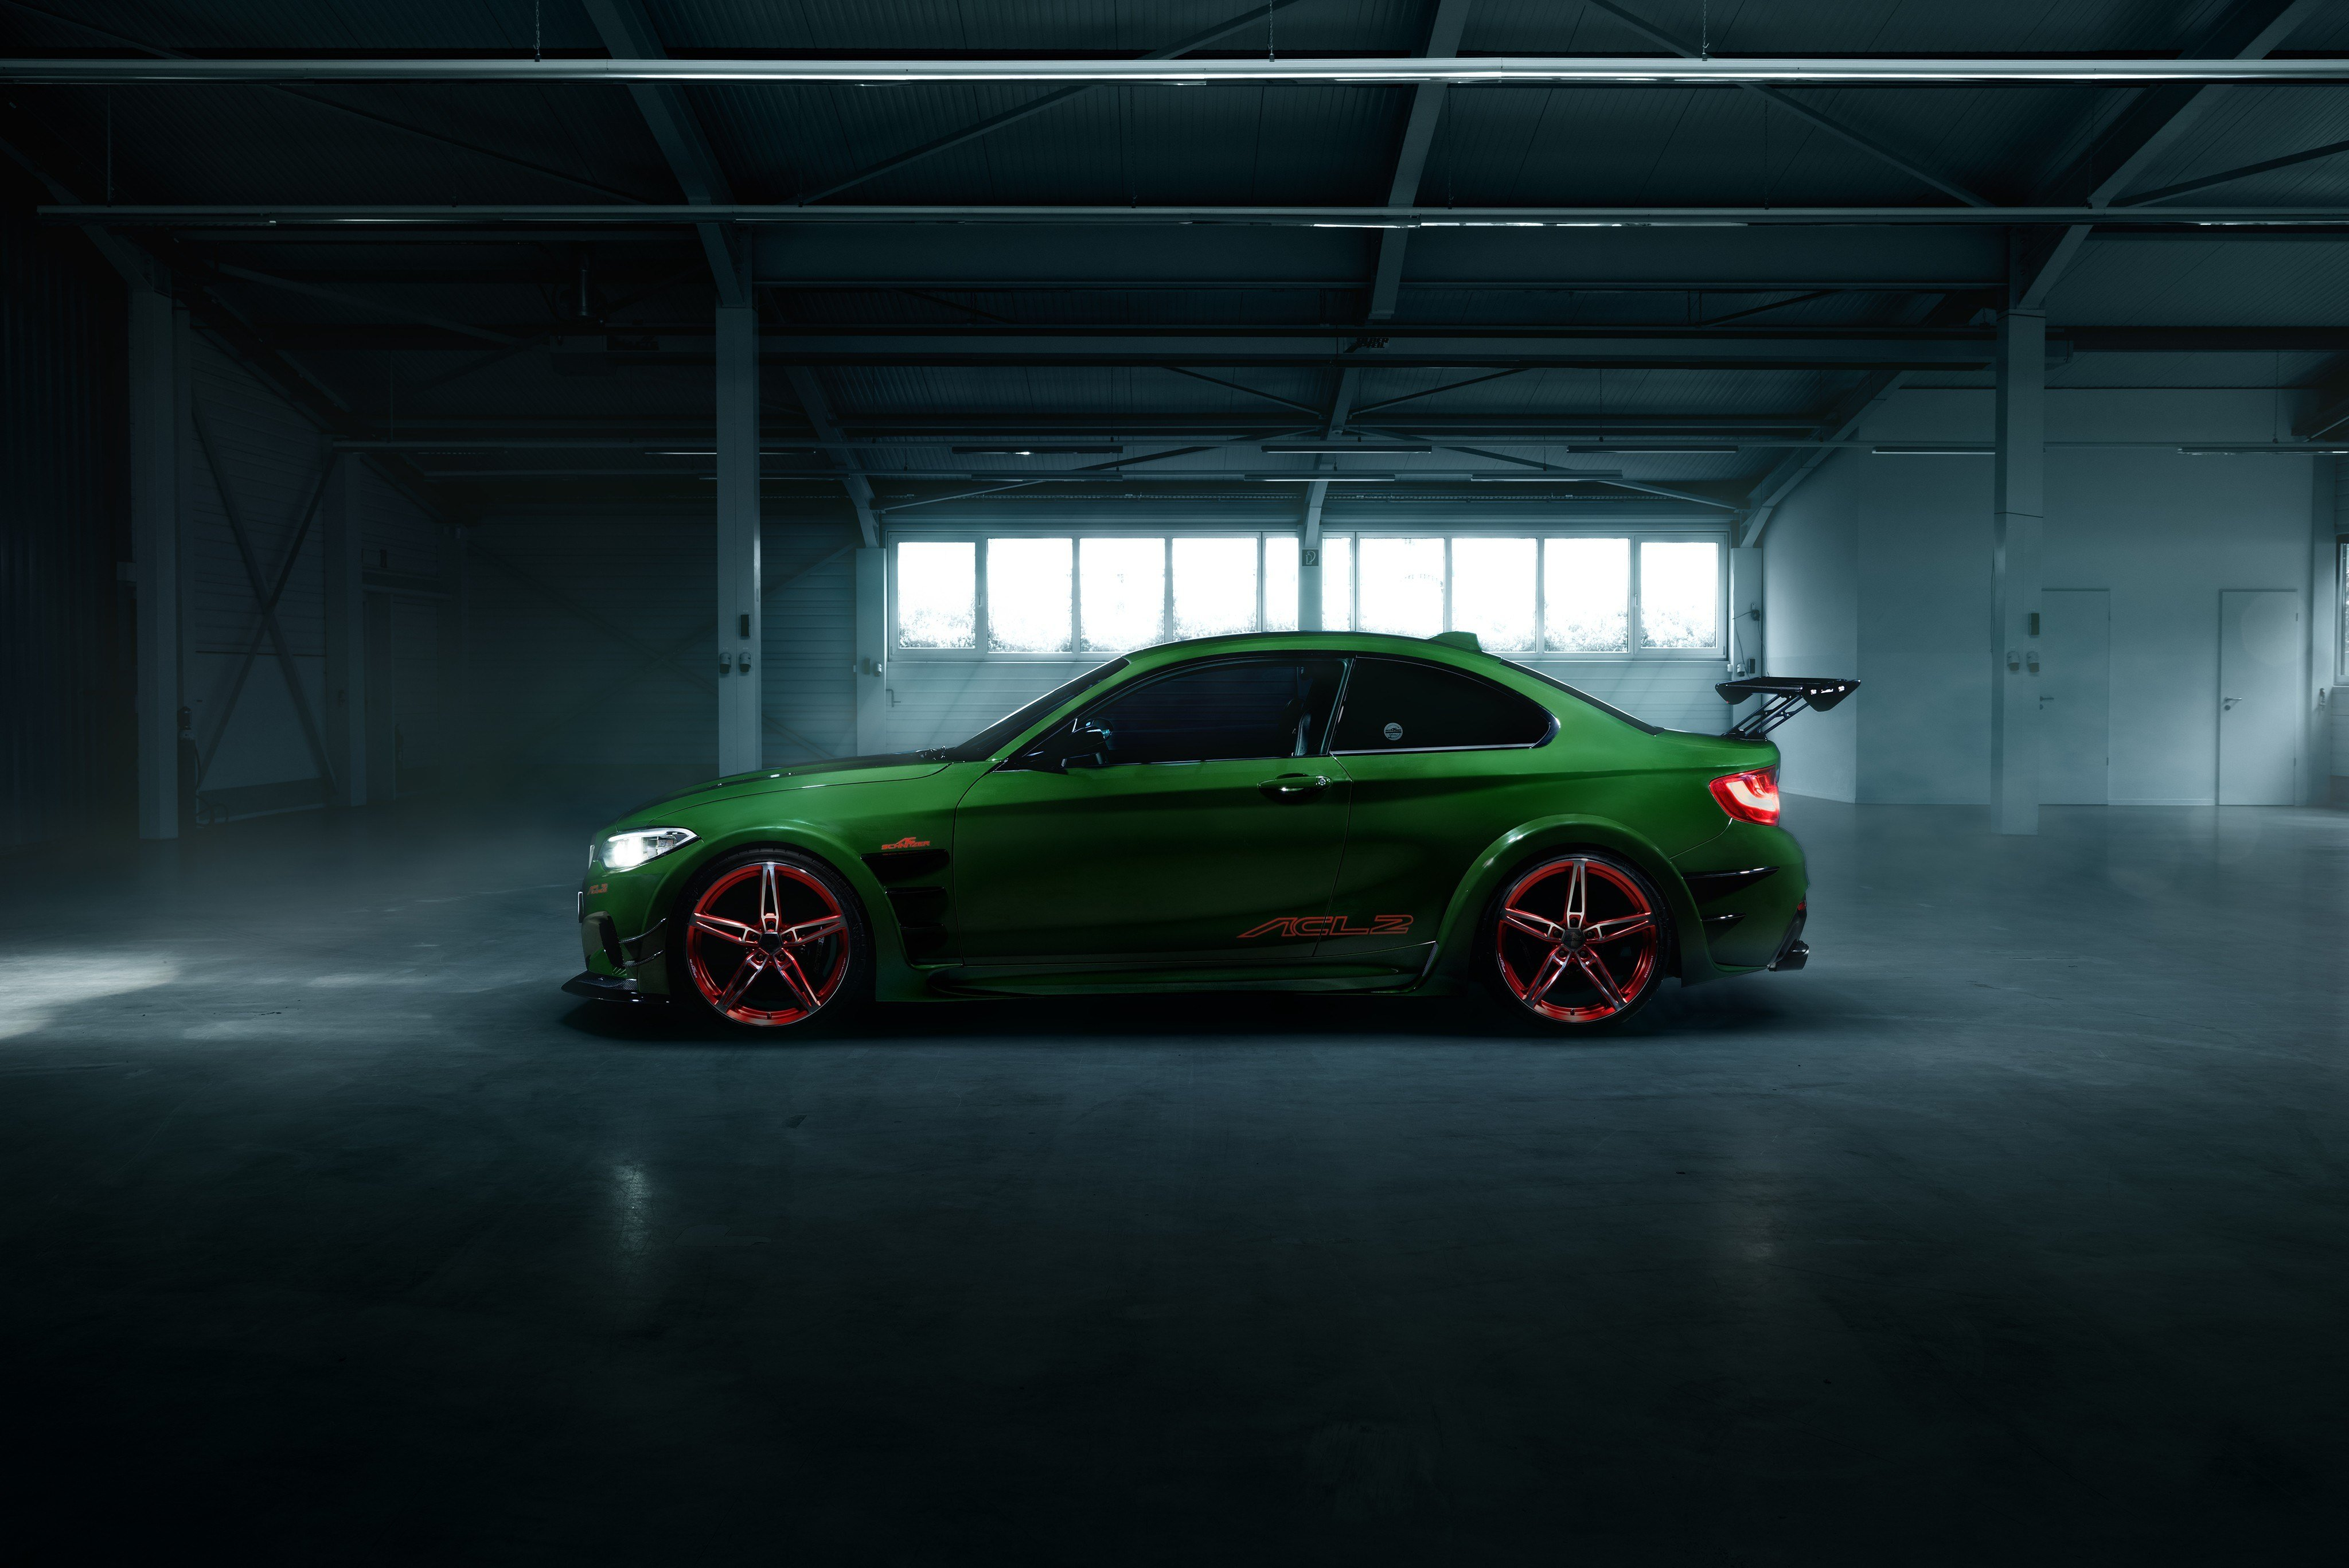 Latest Wallpaper Bmw 2 Series Ac Schnitzer Acl2 F22 Geneva Free Download